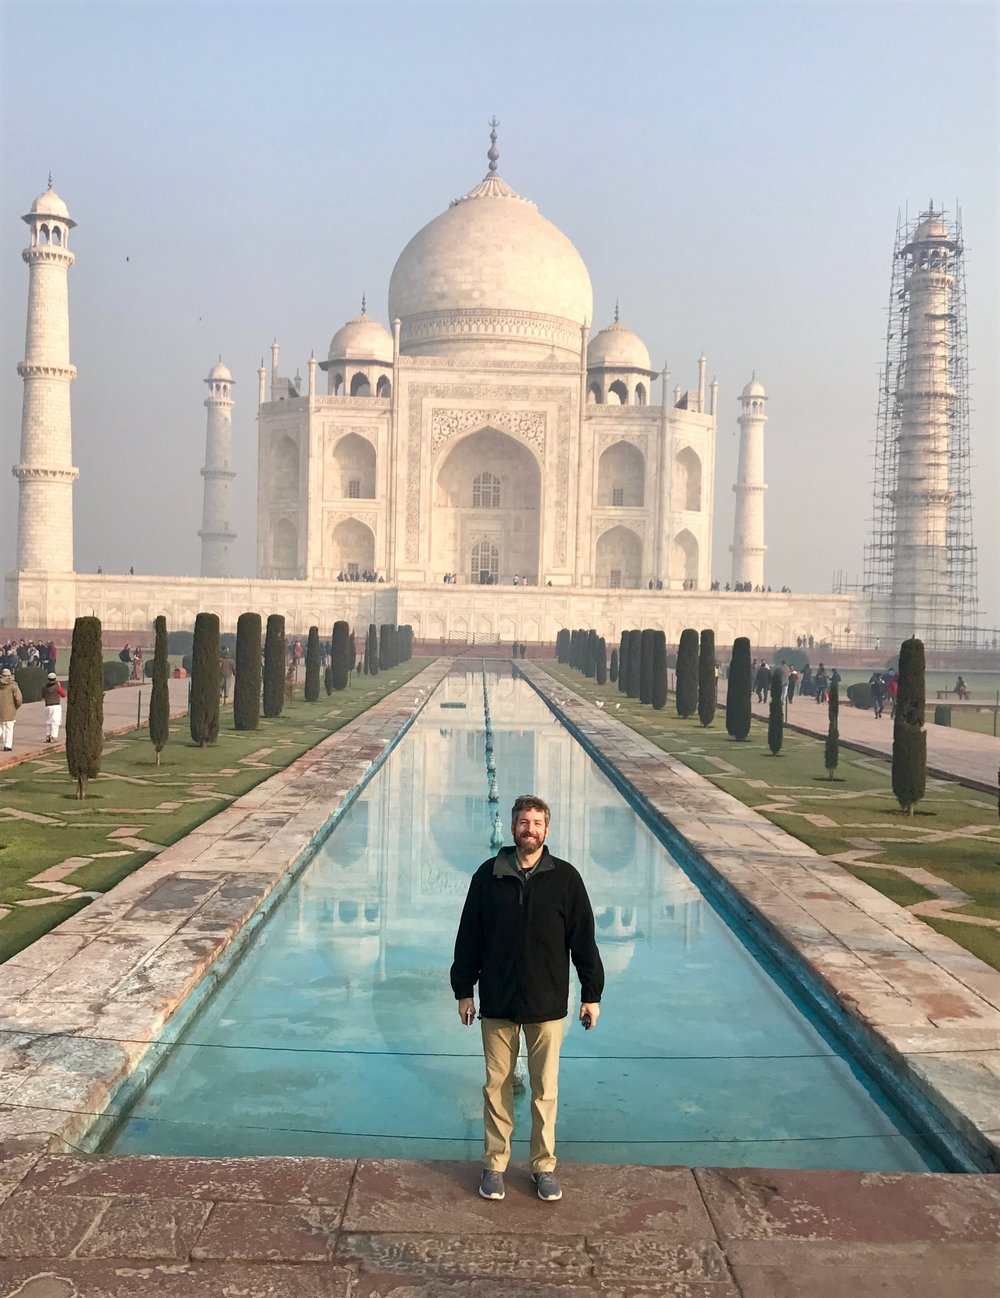 Michael at the Taj Mahal in Agra, India (2017)